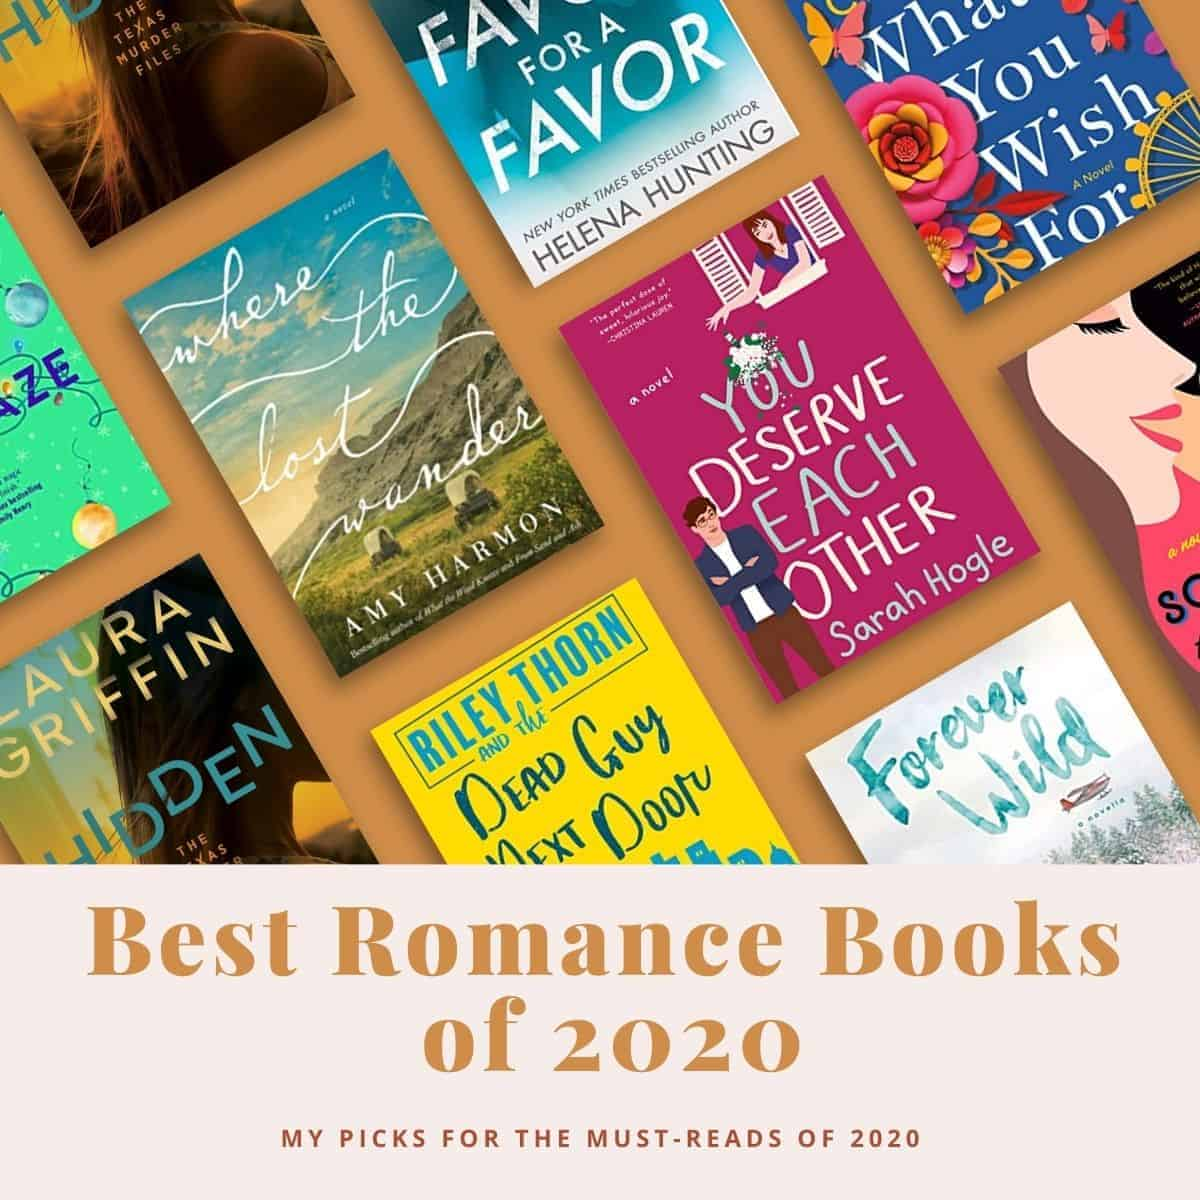 Totally BeBest Romance Novels of 2020-Instagramx totally bex tb